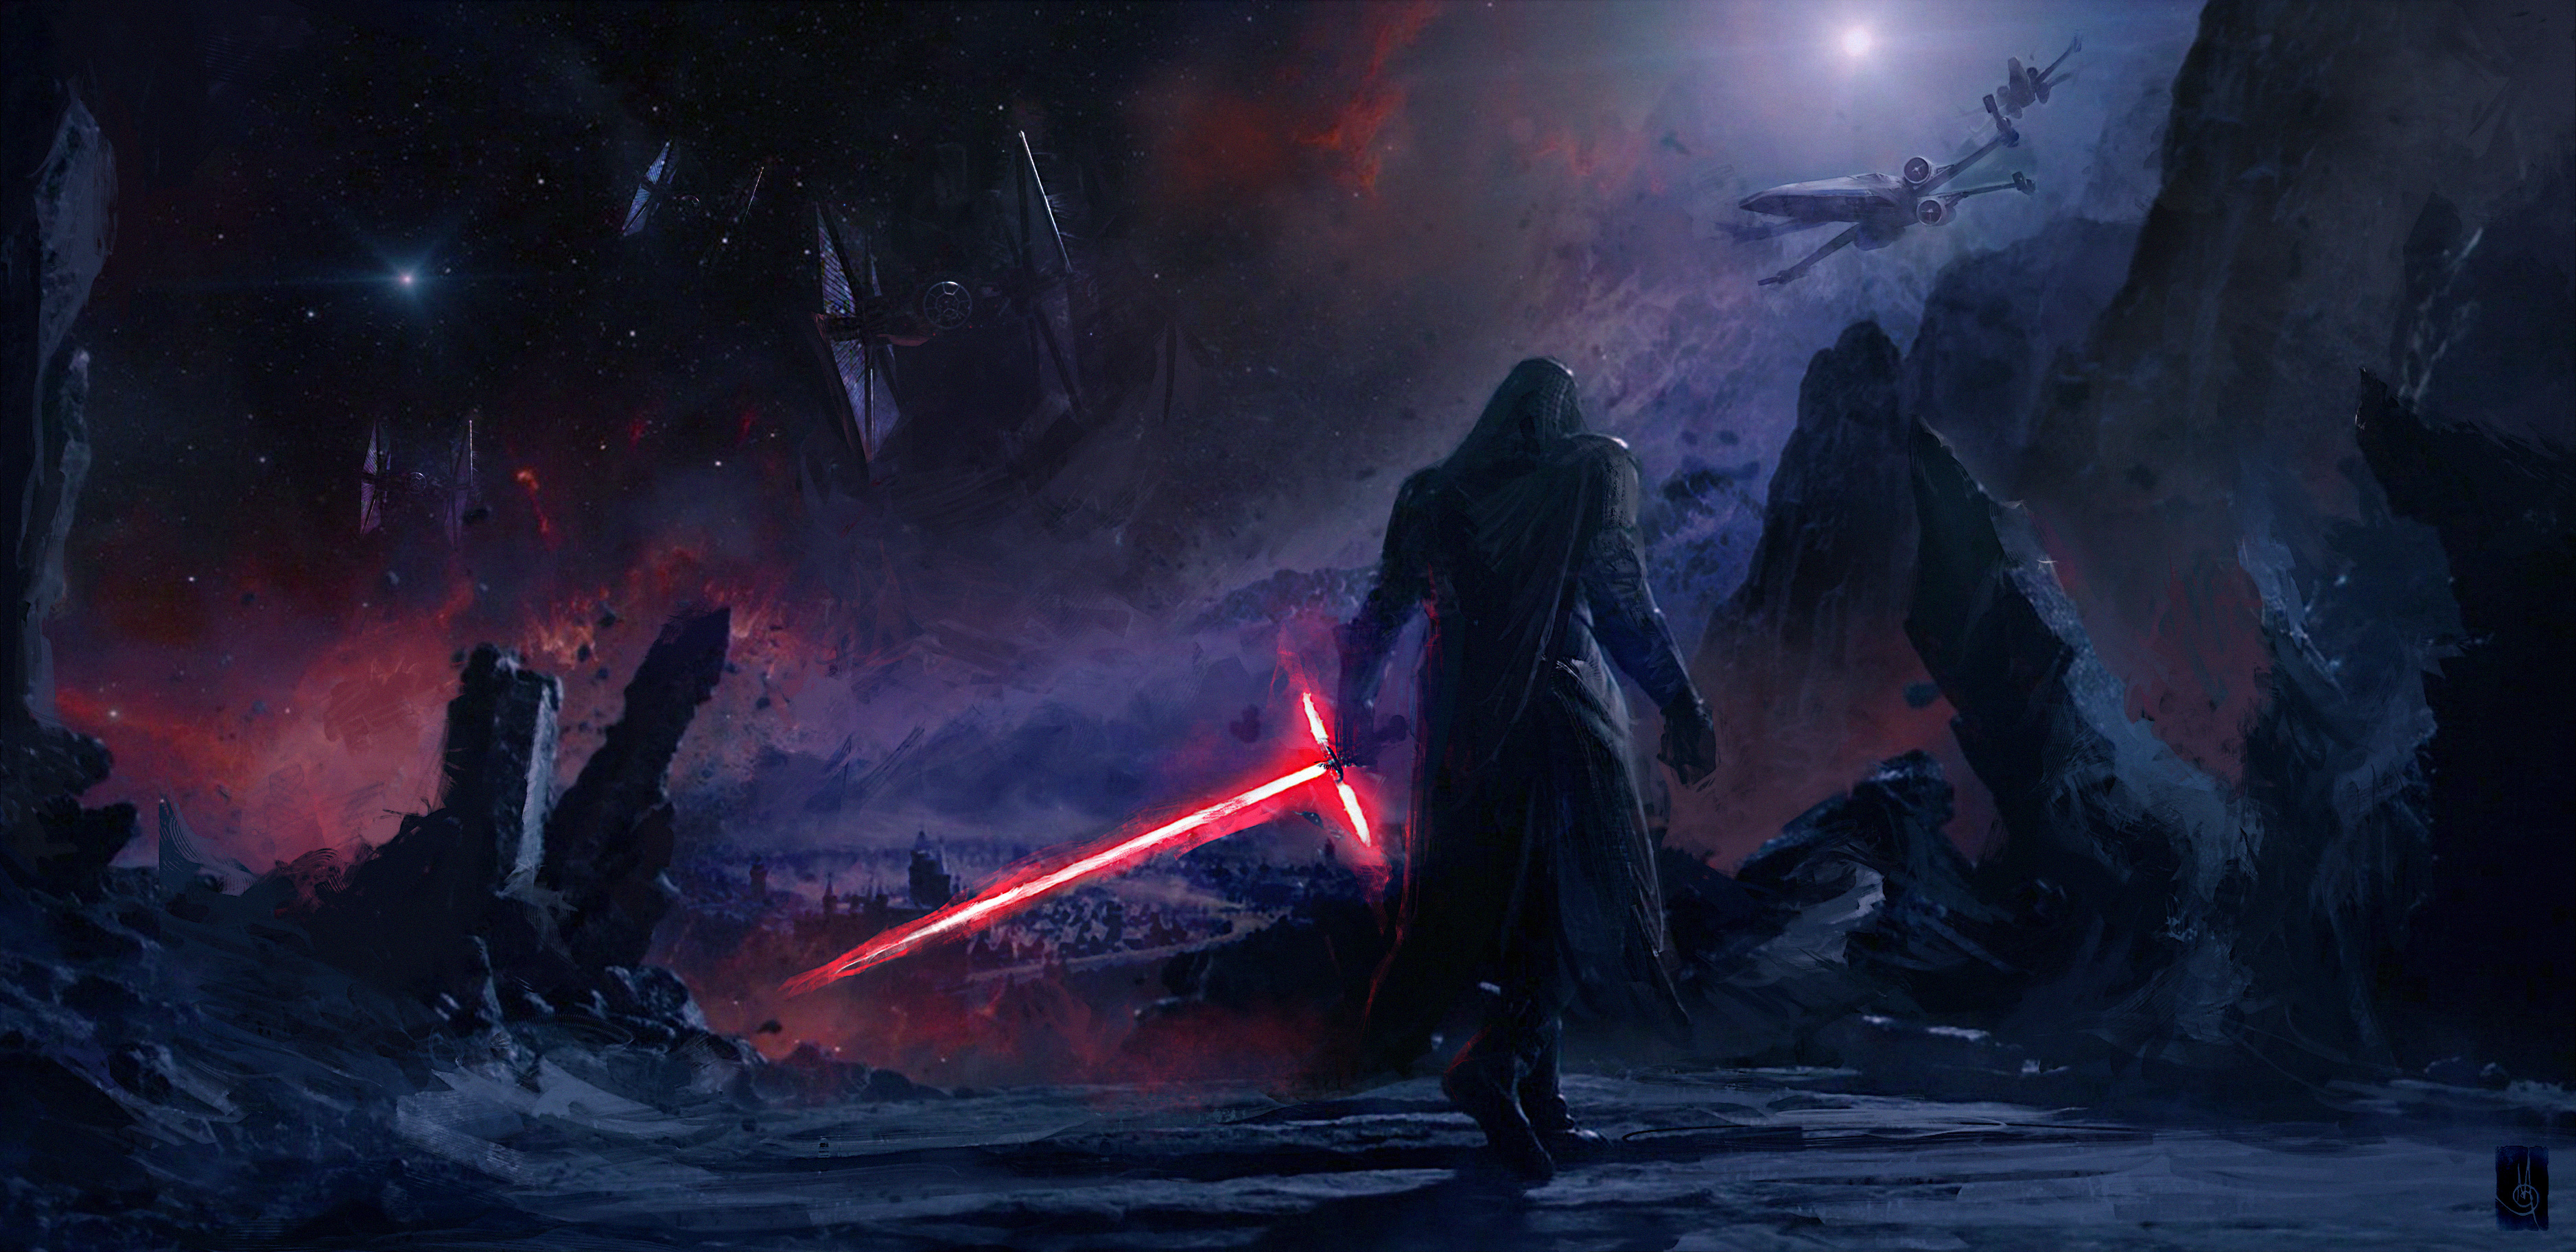 1920x1080 Kylo Ren Star Wars Artwork 4k Laptop Full Hd 1080p Hd 4k Wallpapers Images Backgrounds Photos And Pictures